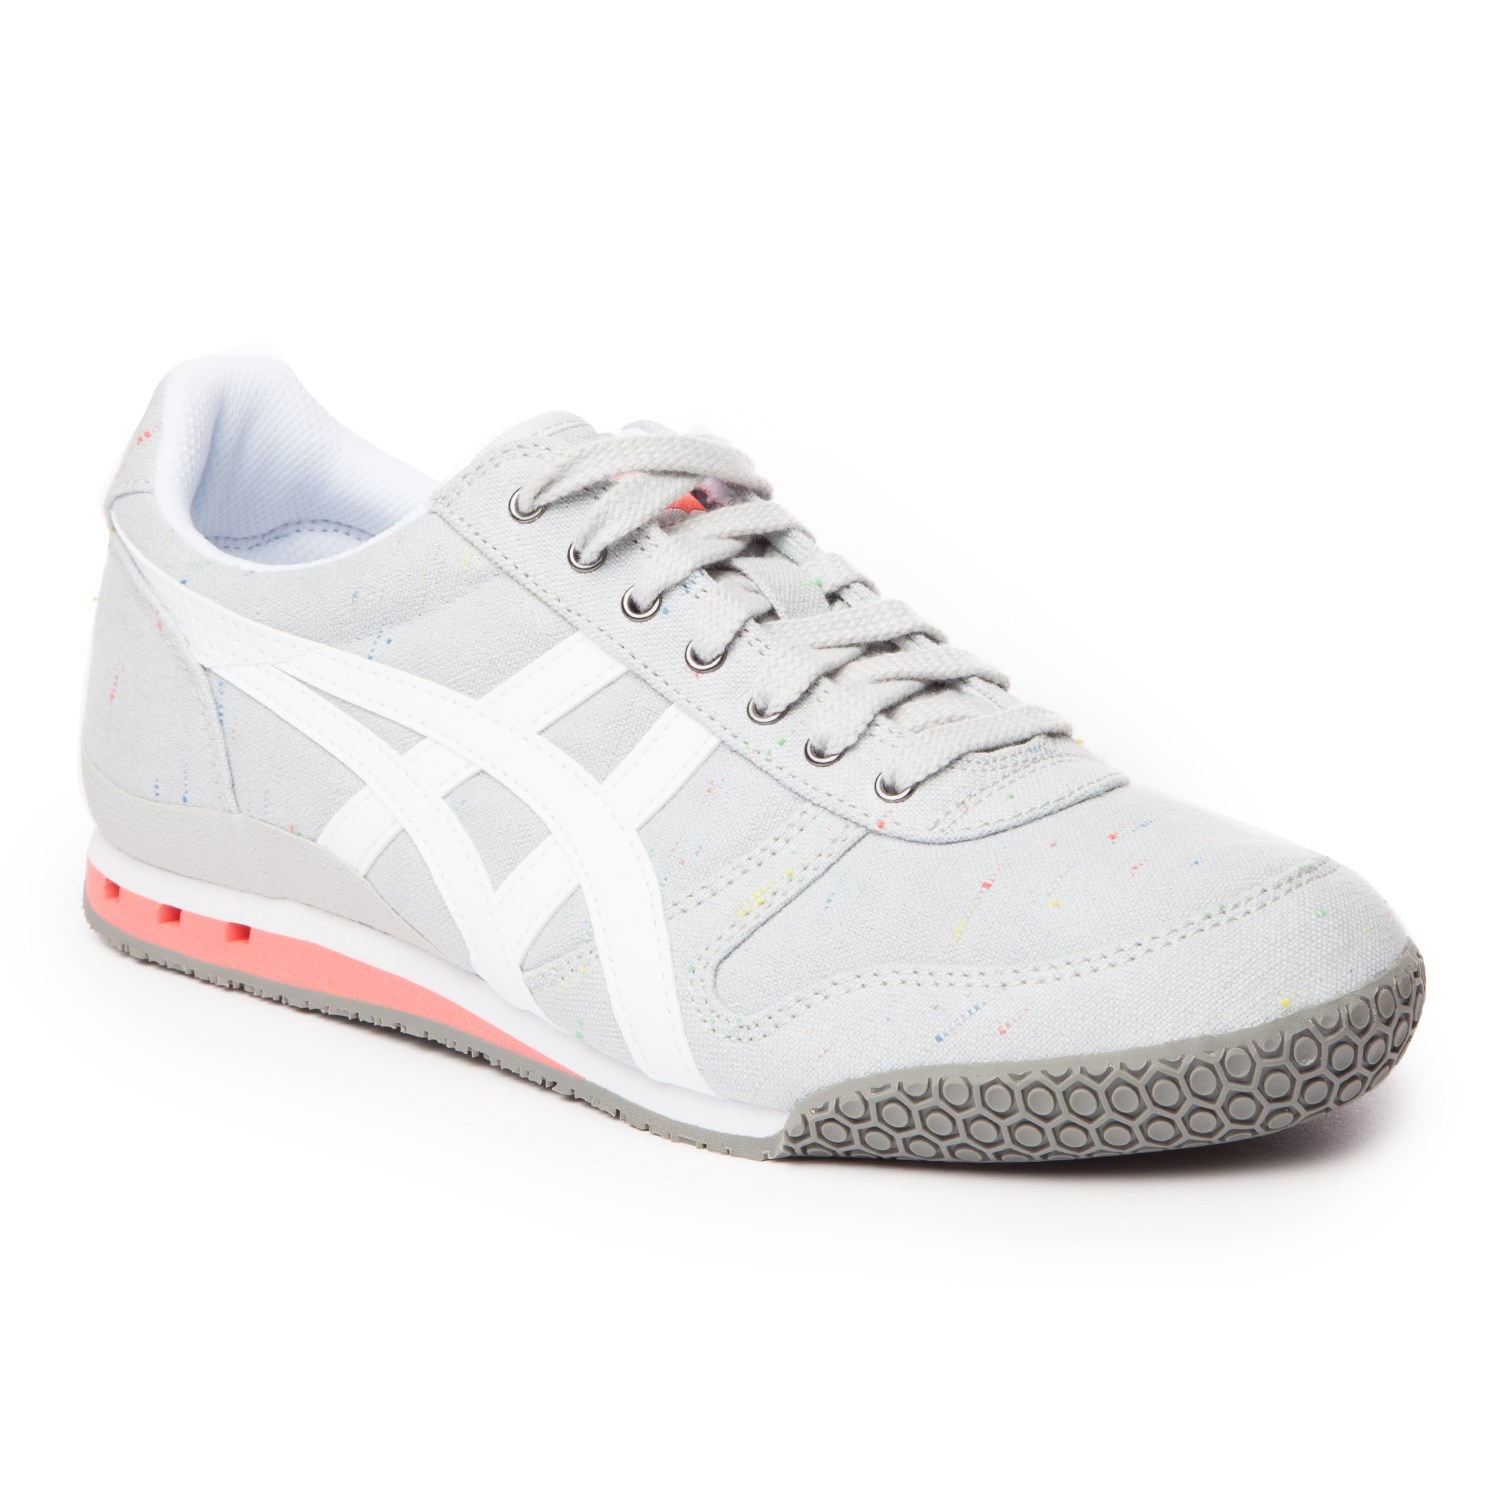 premium selection eefe9 503a9 Onitsuka Tiger Ultimate 81® Shoes - Women's | evo